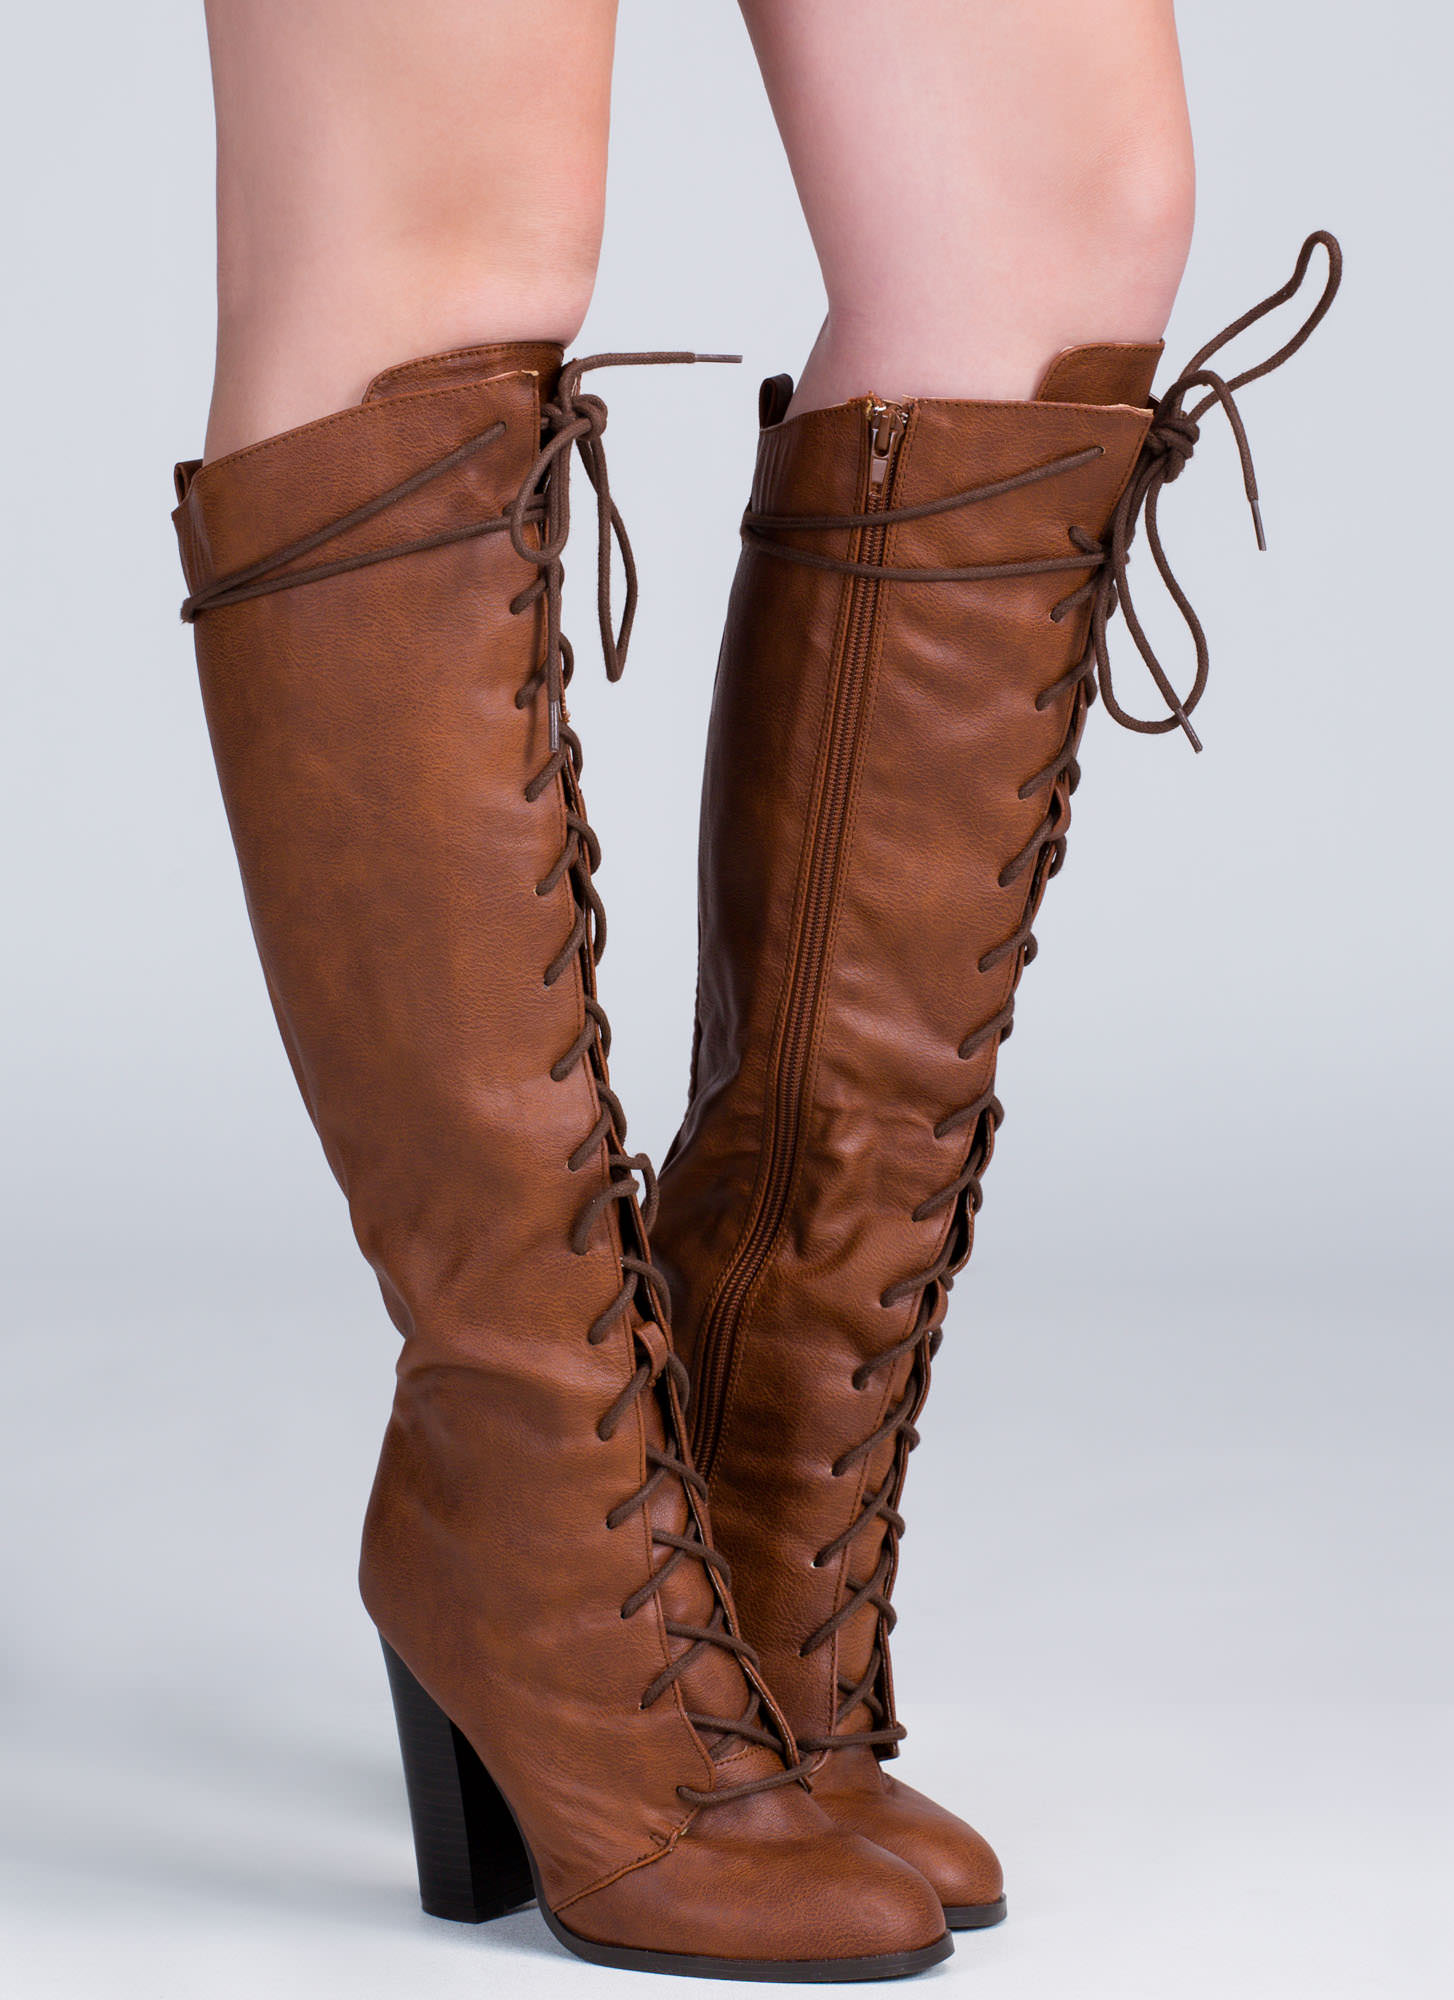 Chunky Laced Knee-High Boots BLACK TAUPE COGNAC - GoJane.com